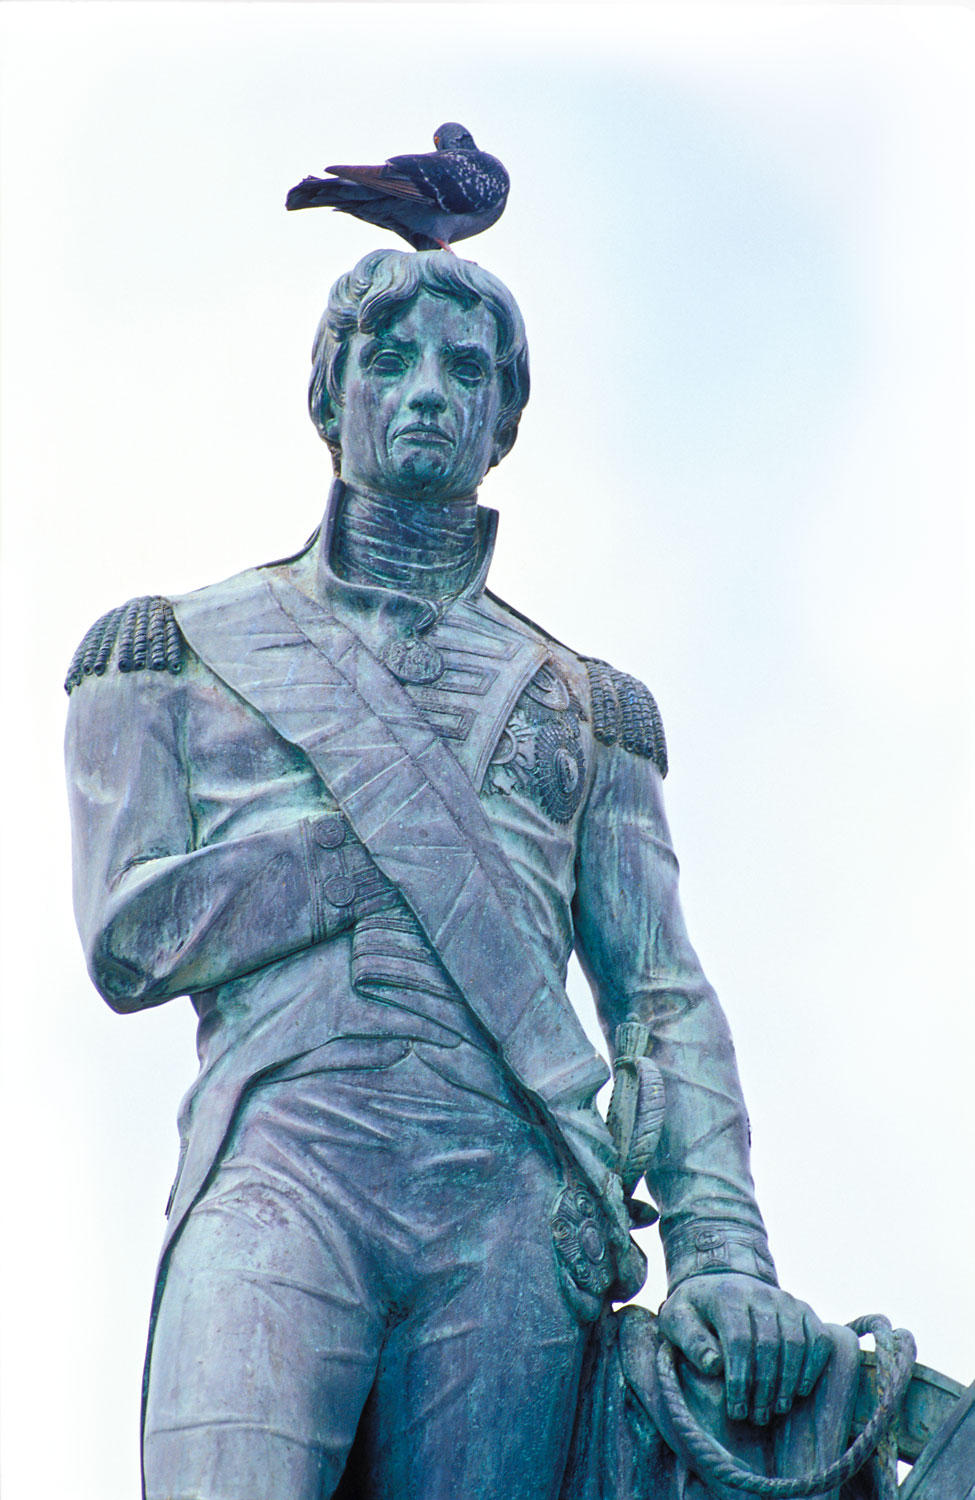 Lord Nelson, Vice-Admiral of Britain's Royal Navy. Photograph courtesy Mike Toy